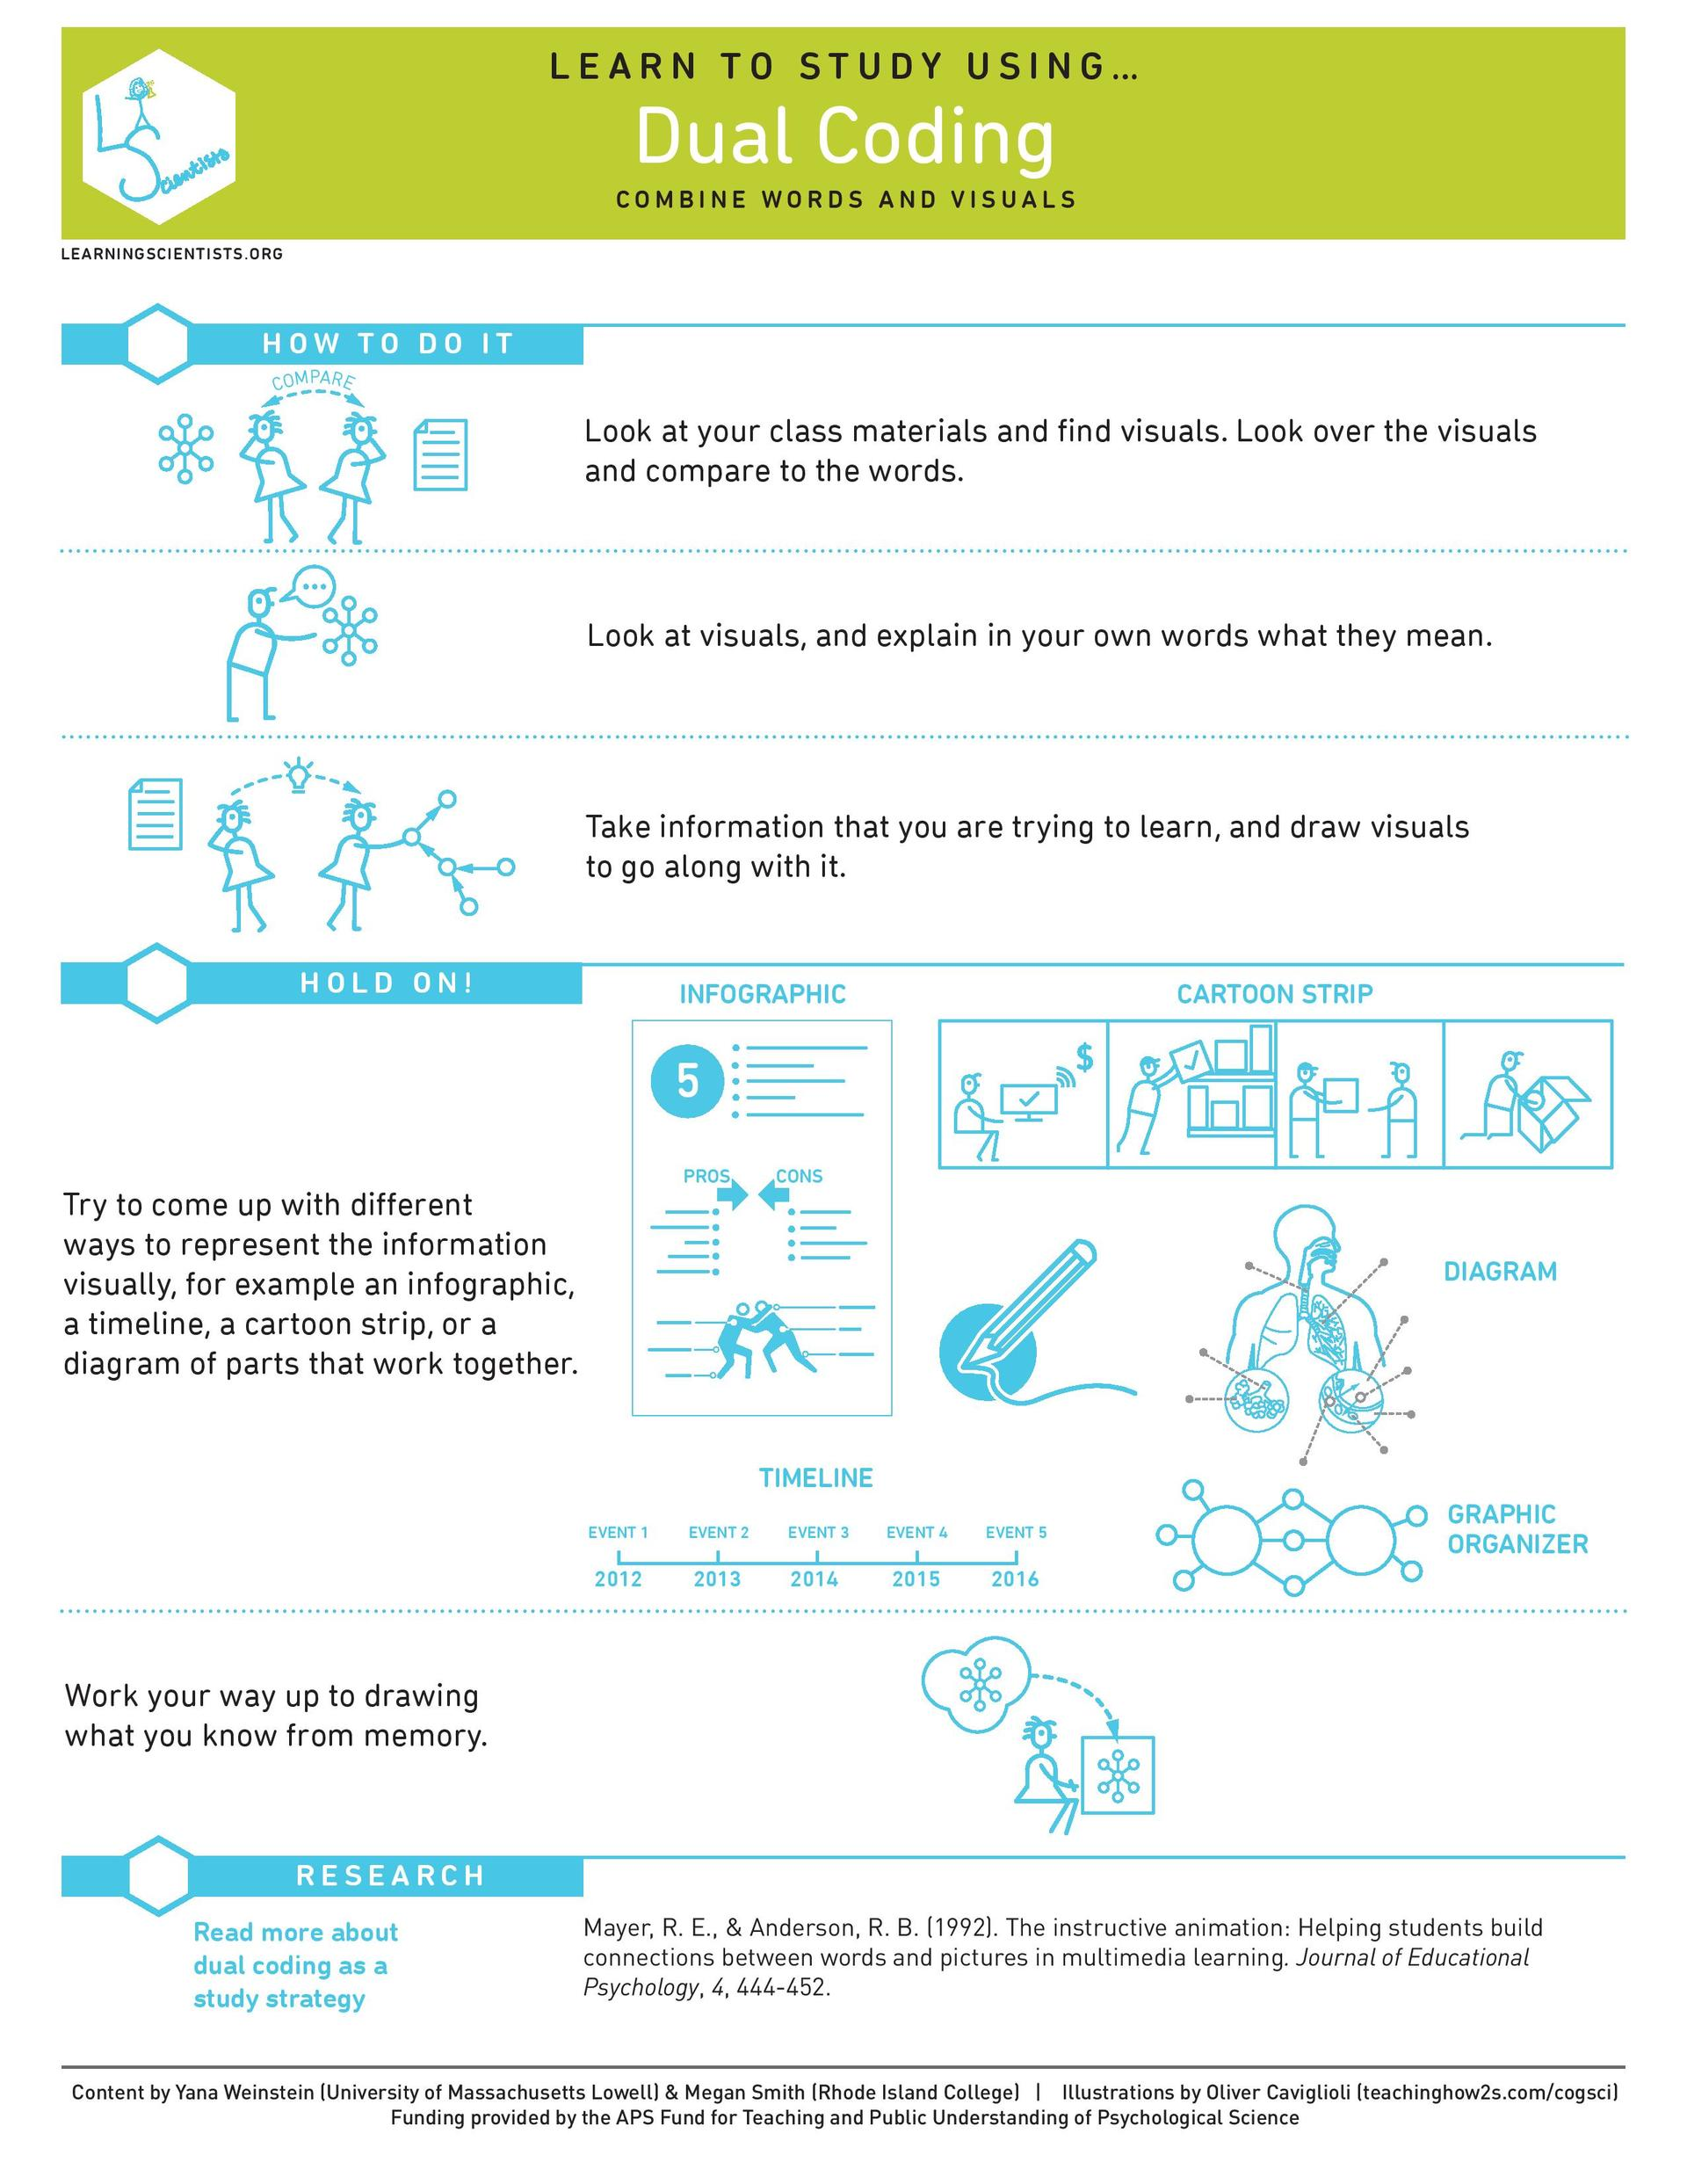 How to Study Using Dual Coding Infographic